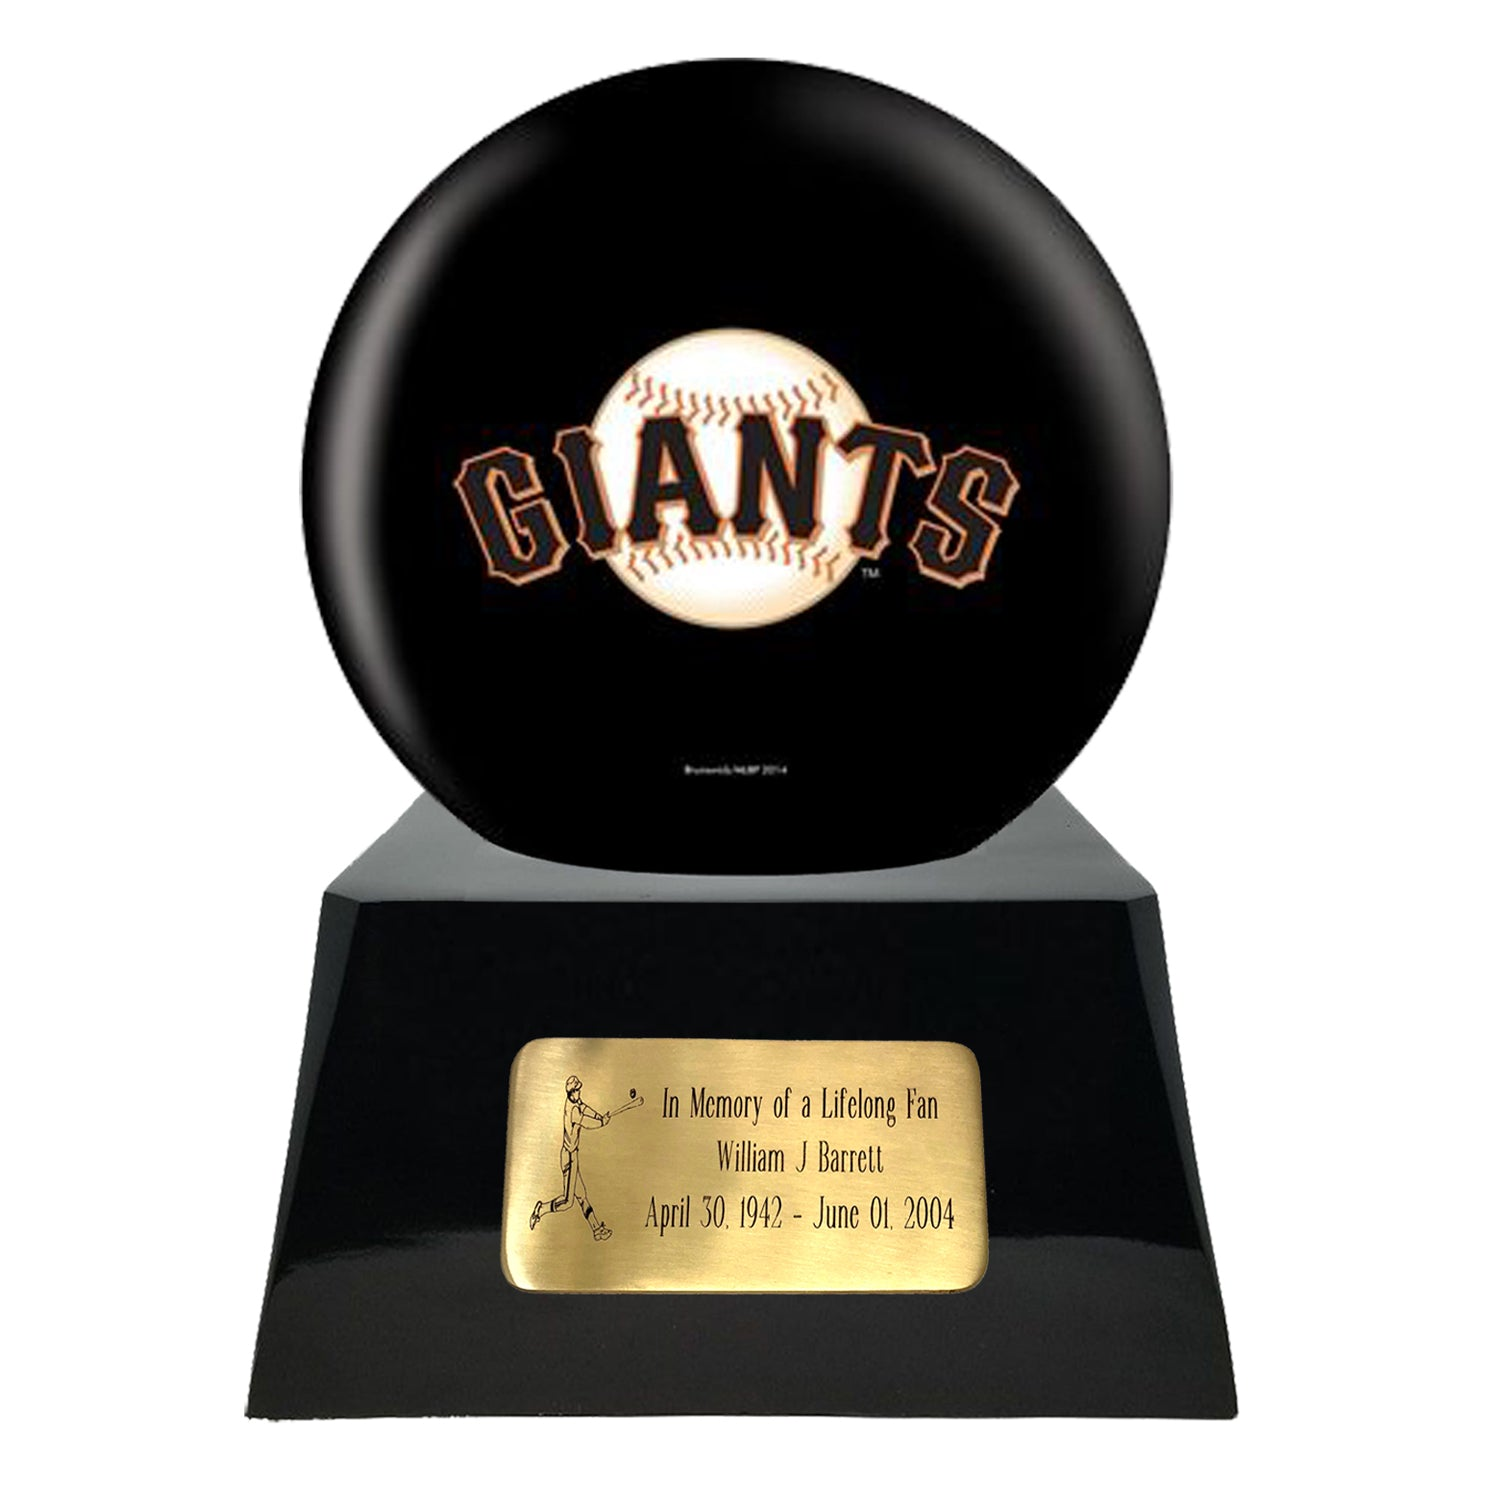 Baseball Cremation Urns For Human Ashes - Baseball Team Cremation Urn and San Francisco Giants Ball Decor with custom metal plaque - Memorials4u